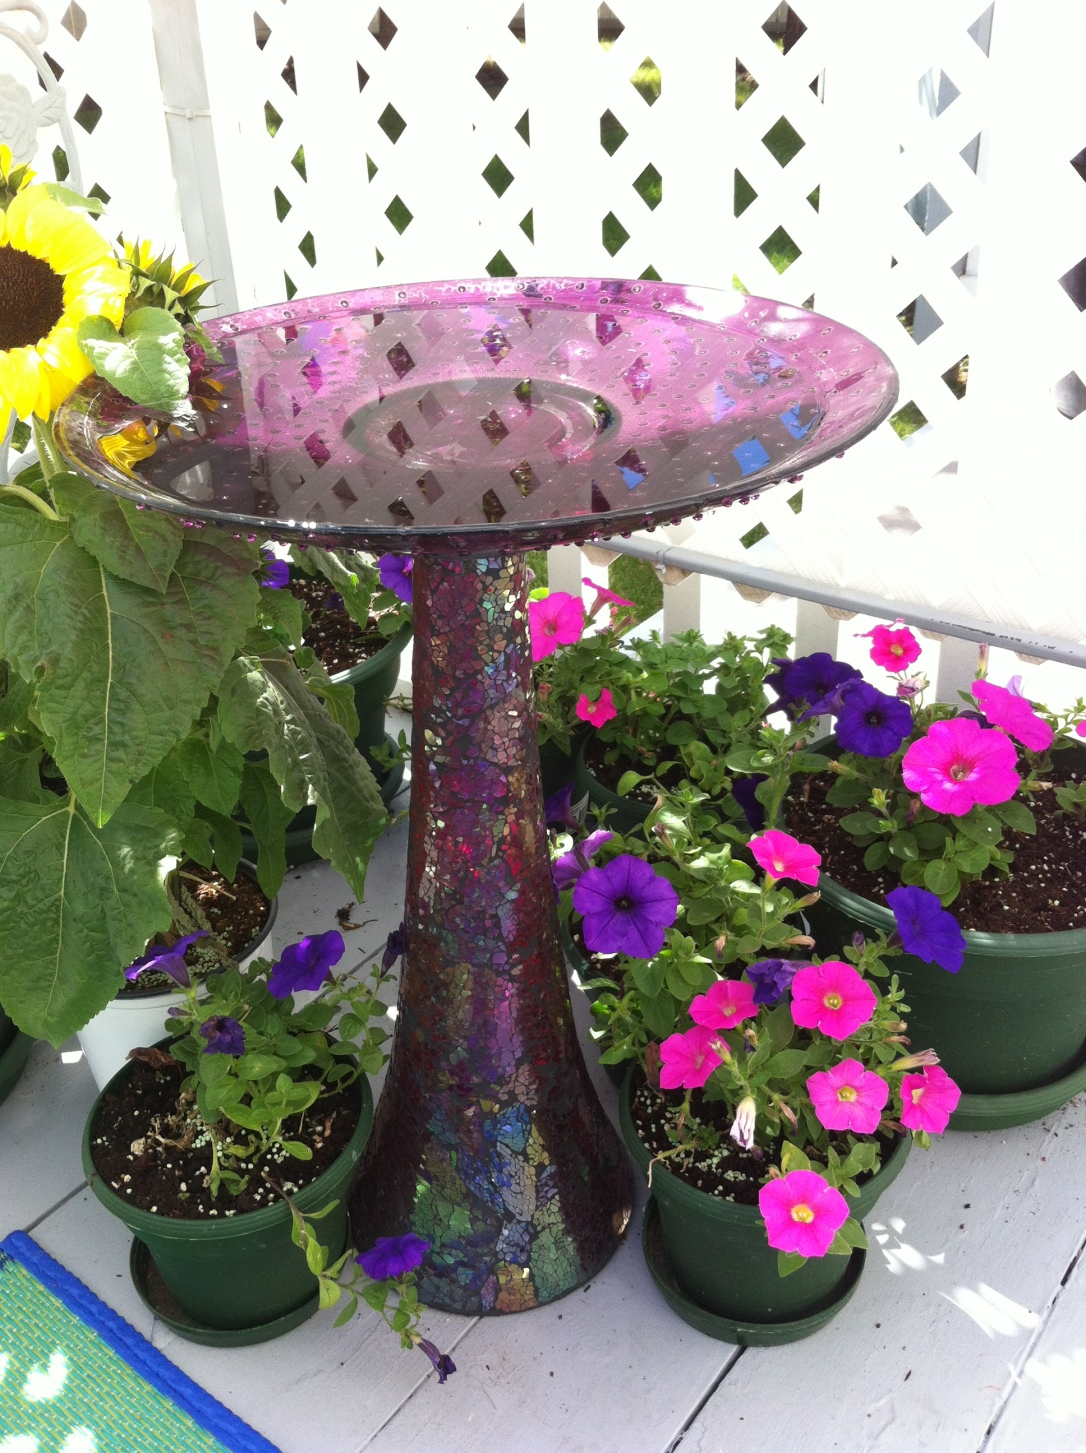 Upcycled Bird Bath from Platter and Vase  8 DIY Patio Accents #trashtotreasure #patio #diy #yard #garden #up-cycle #re-purpose #patio_table #plant_stand #bird_bath #herb_garden #wineglass #martiniglass #candles #art